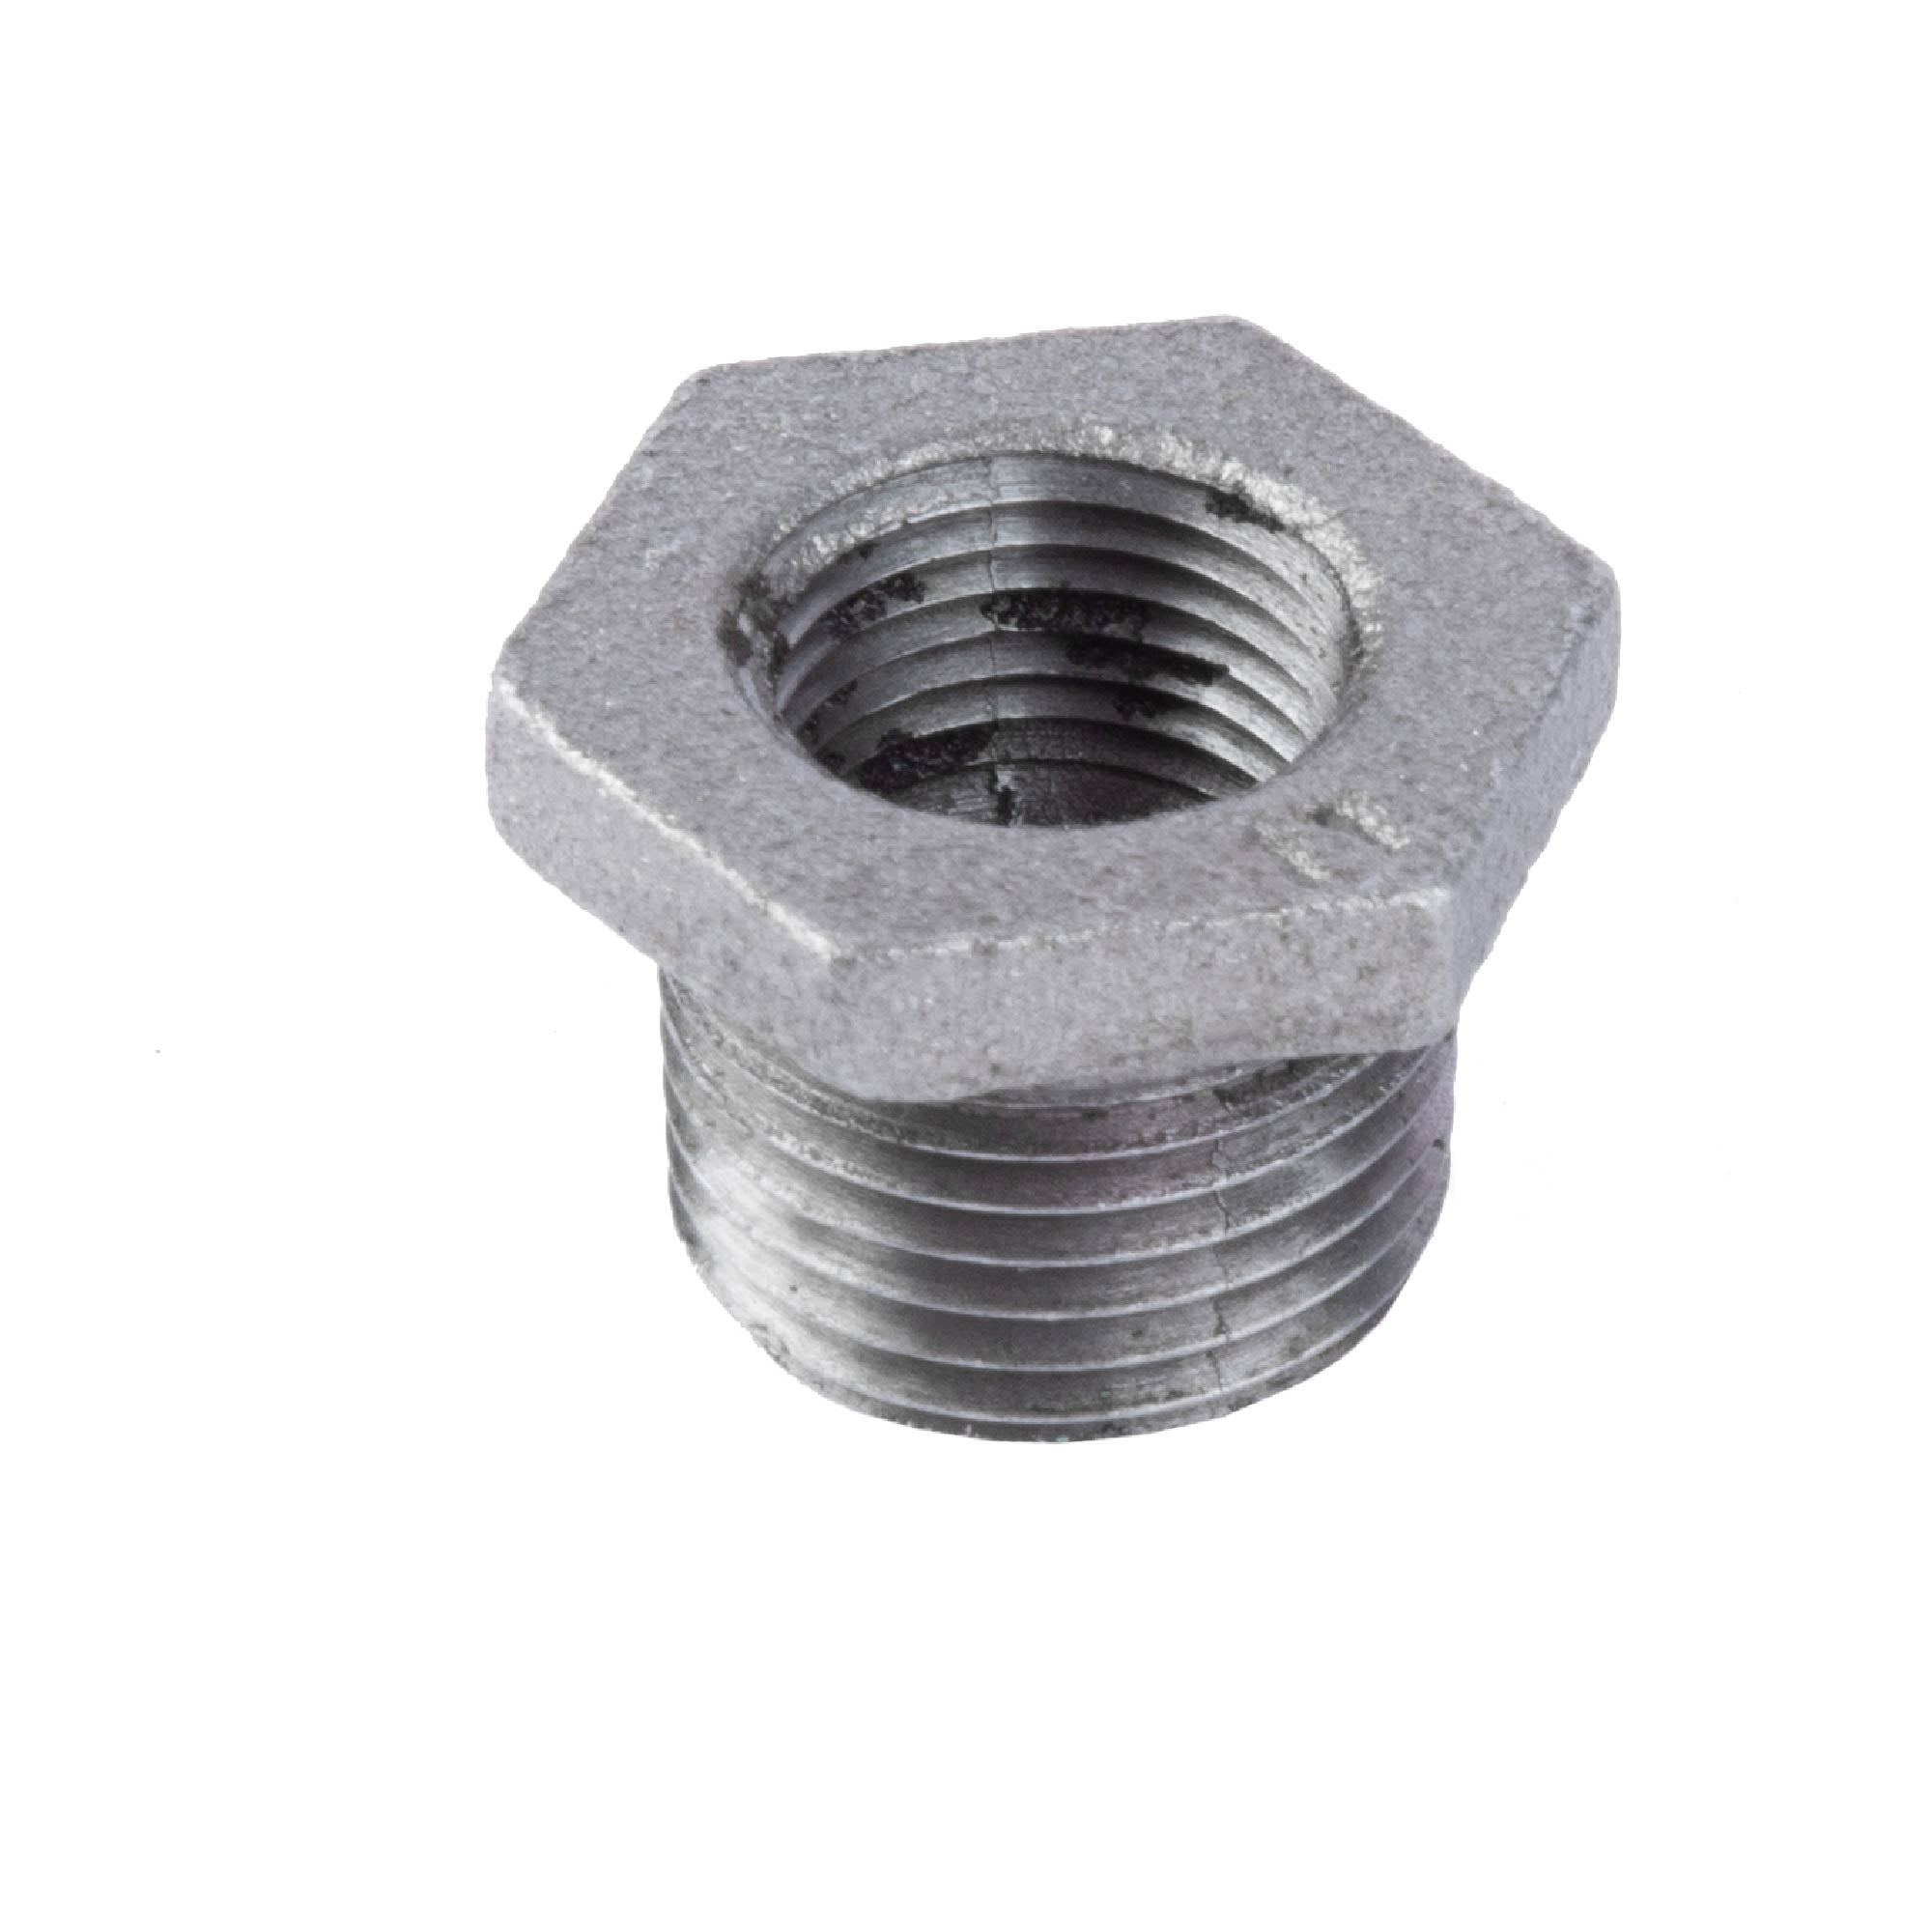 1/2 IN X 3/8 IN BUSHING